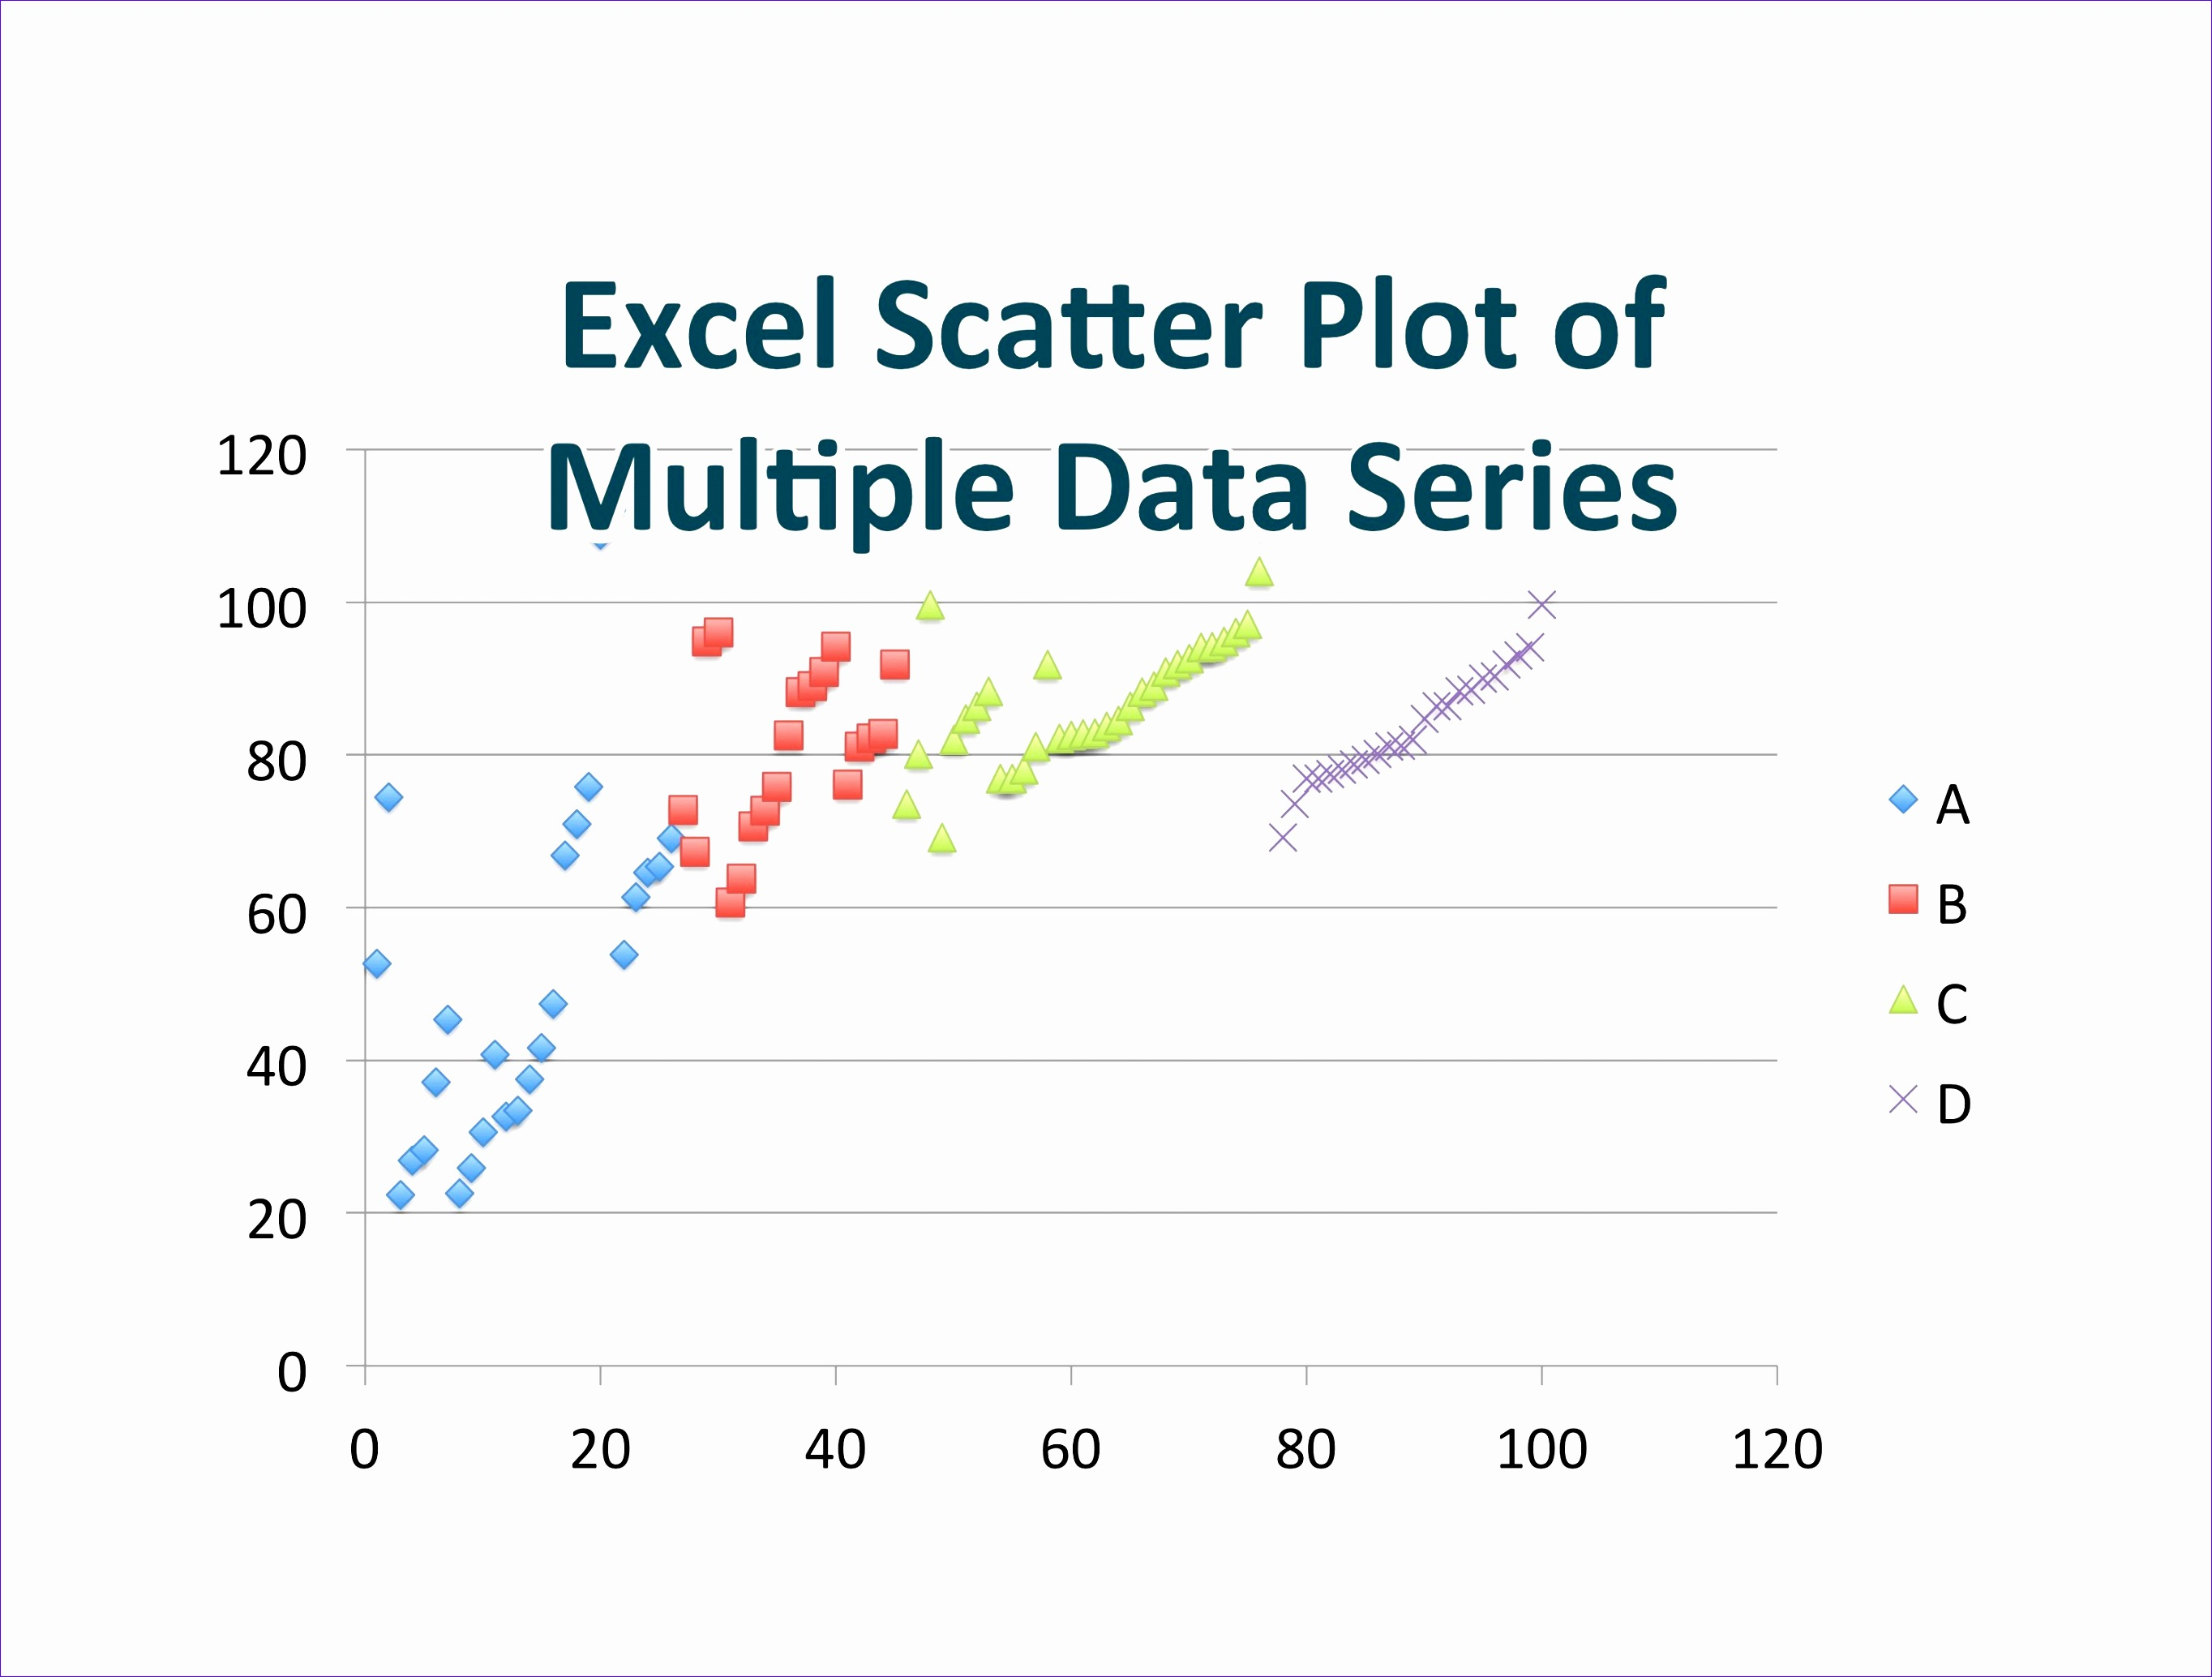 Excel Scatter Plot Template Jriag Awesome Scatter Plot Of Multiple Data Series In Excel for Mac